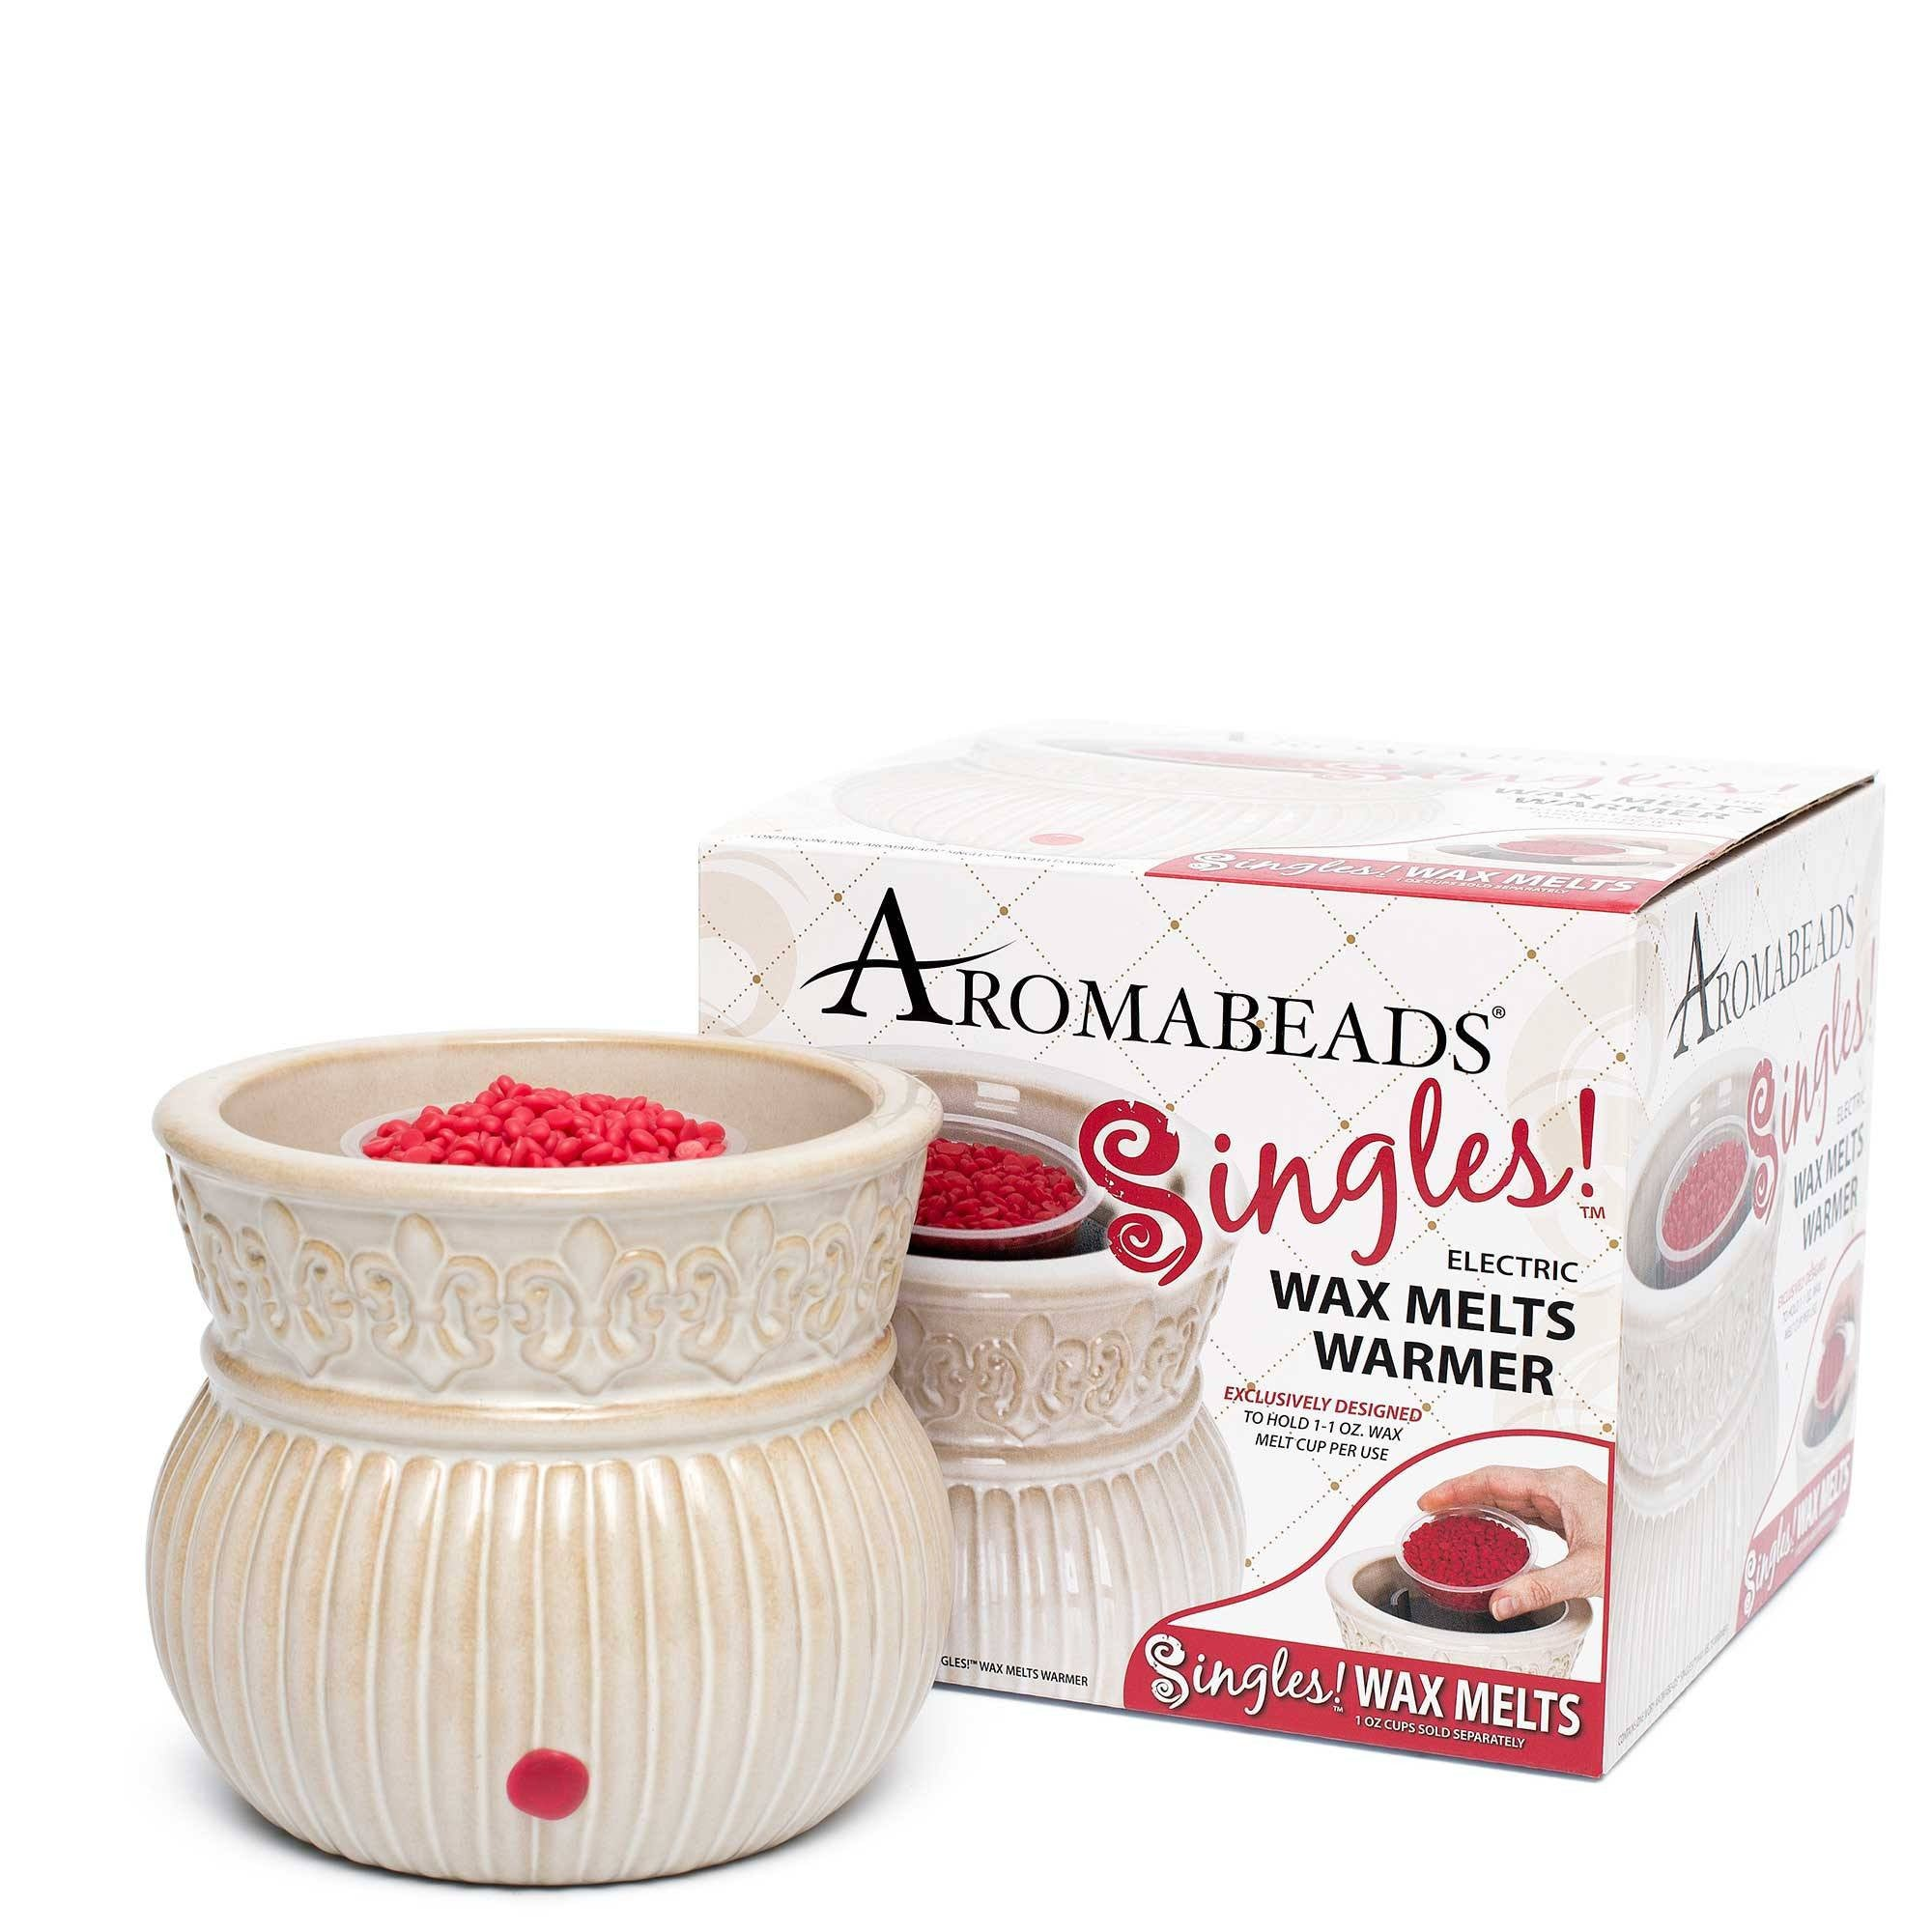 Aromabeads Singles Caramel Apple Toffee Scented Wax Melts - Candlemart.com